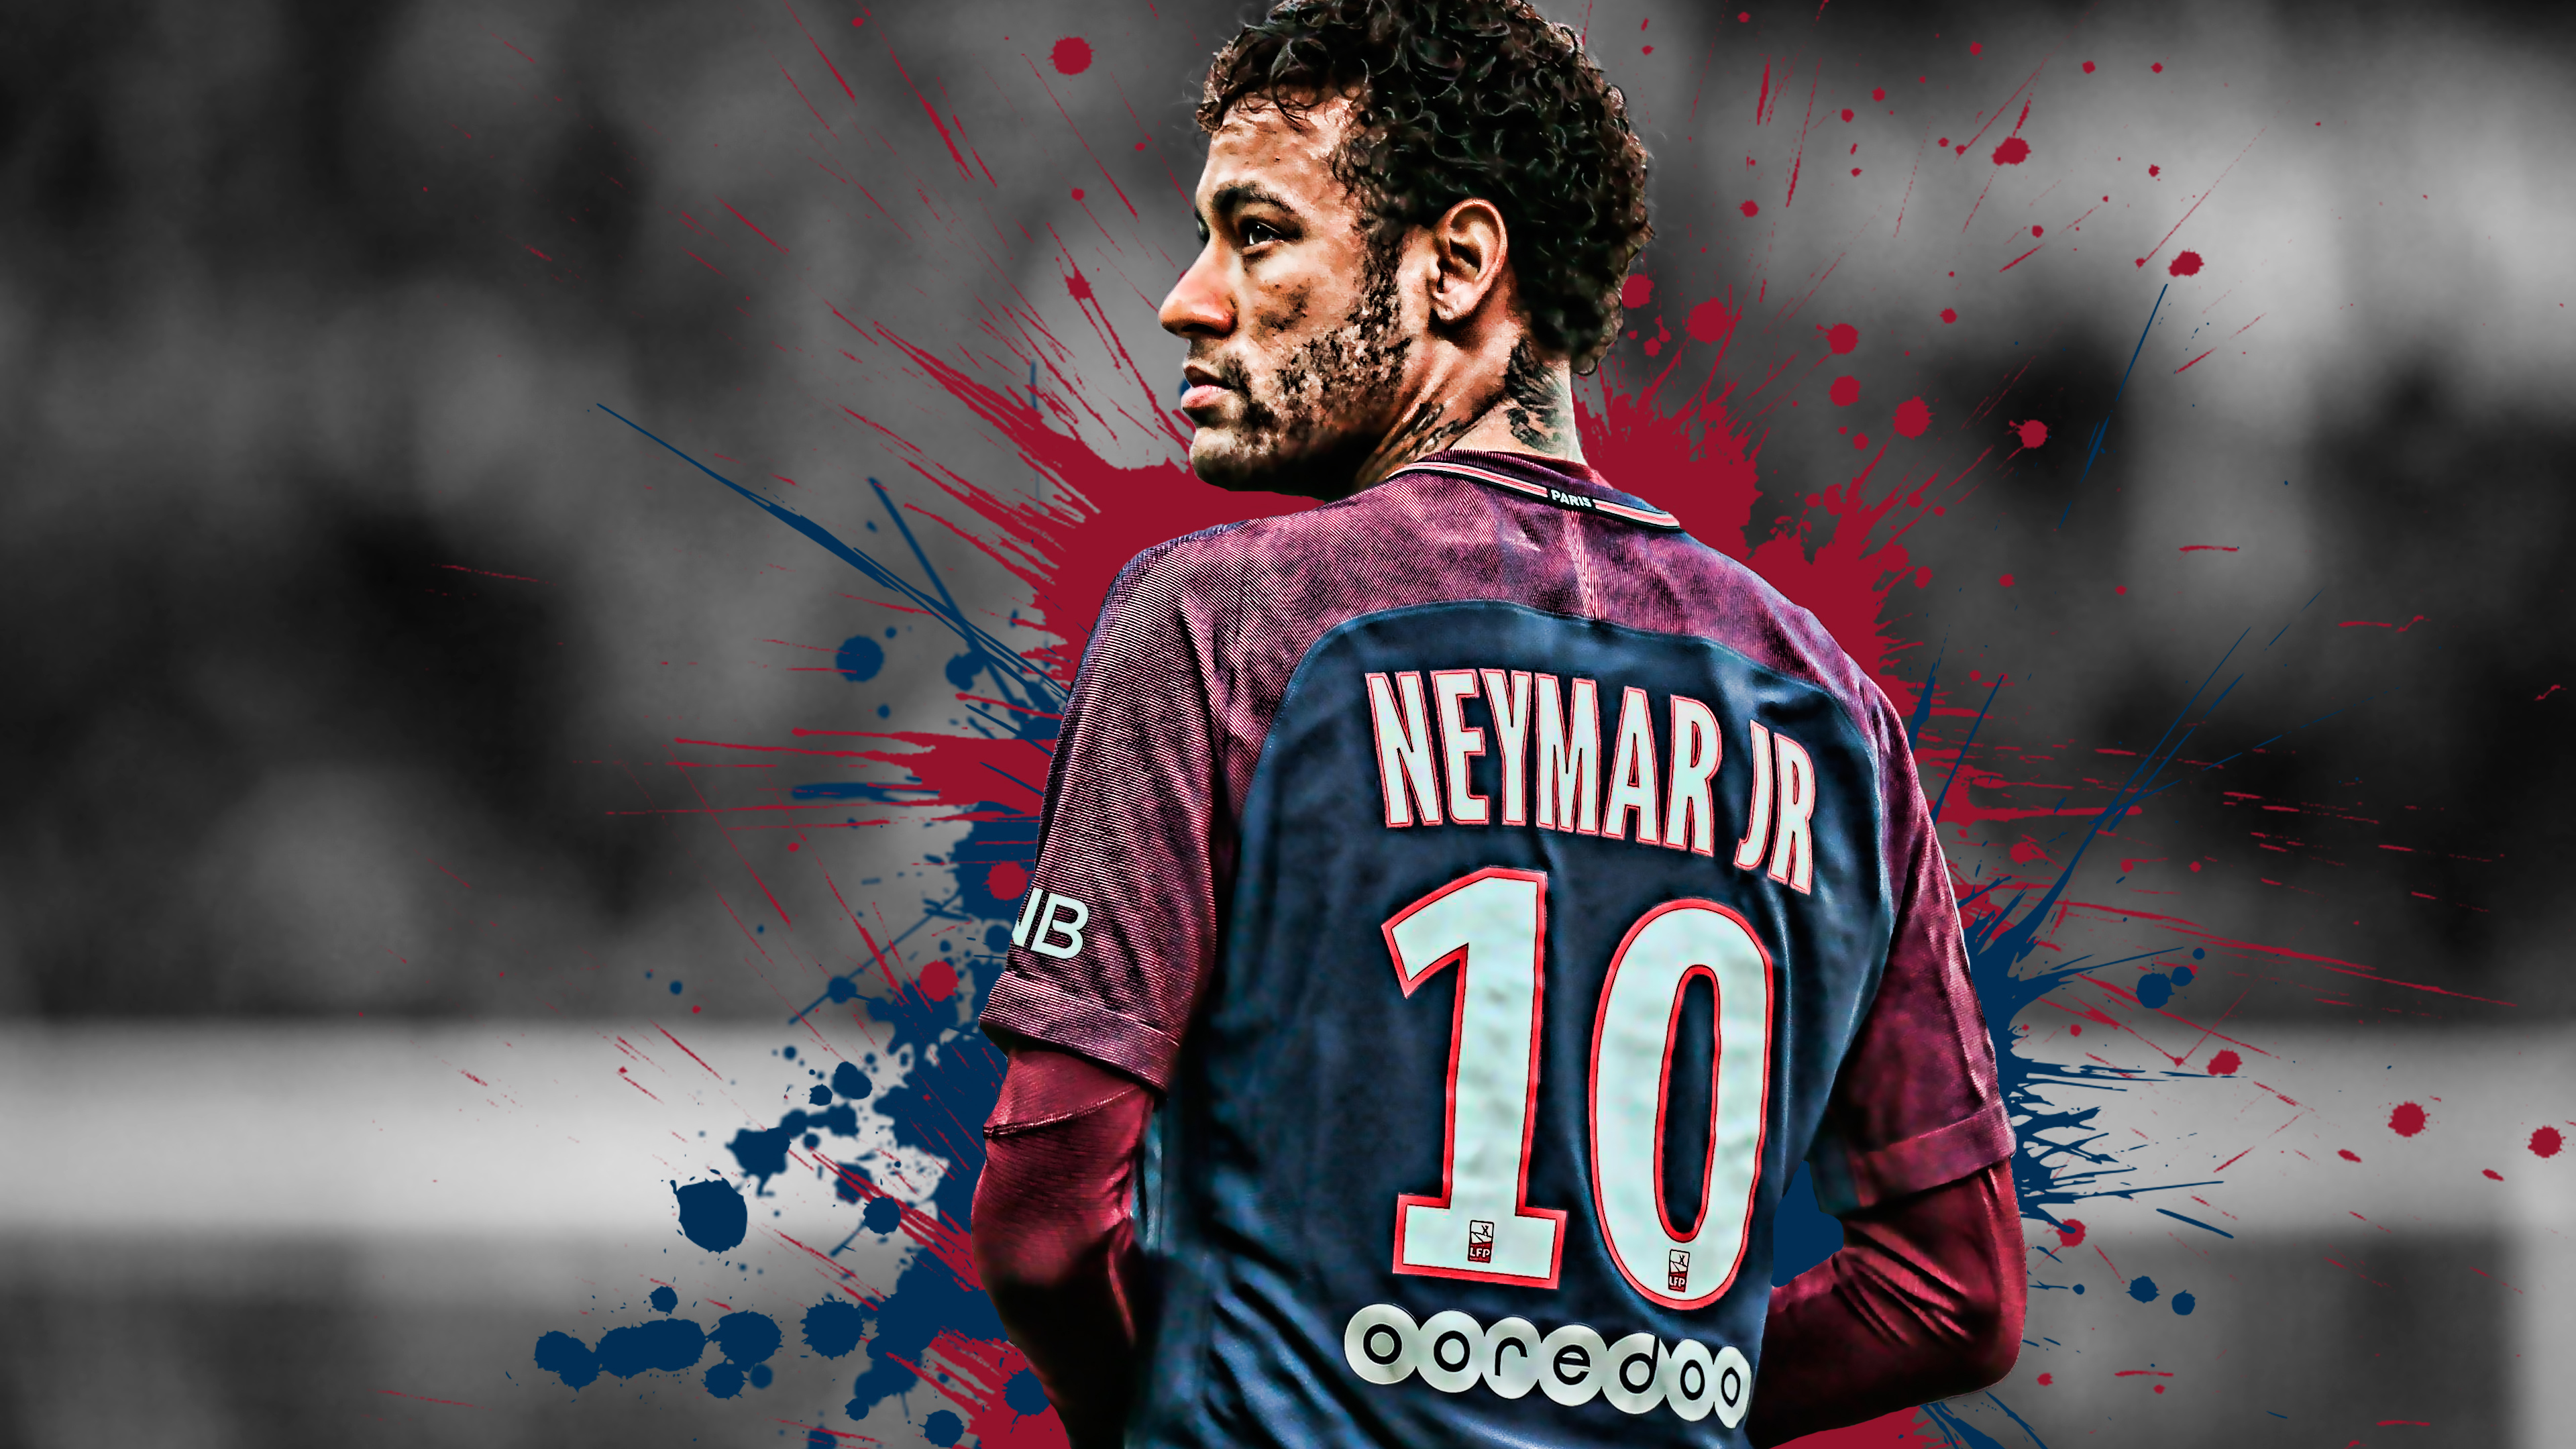 Neymar Brazilian Football Player 4k Wallpapers Hd Wallpapers